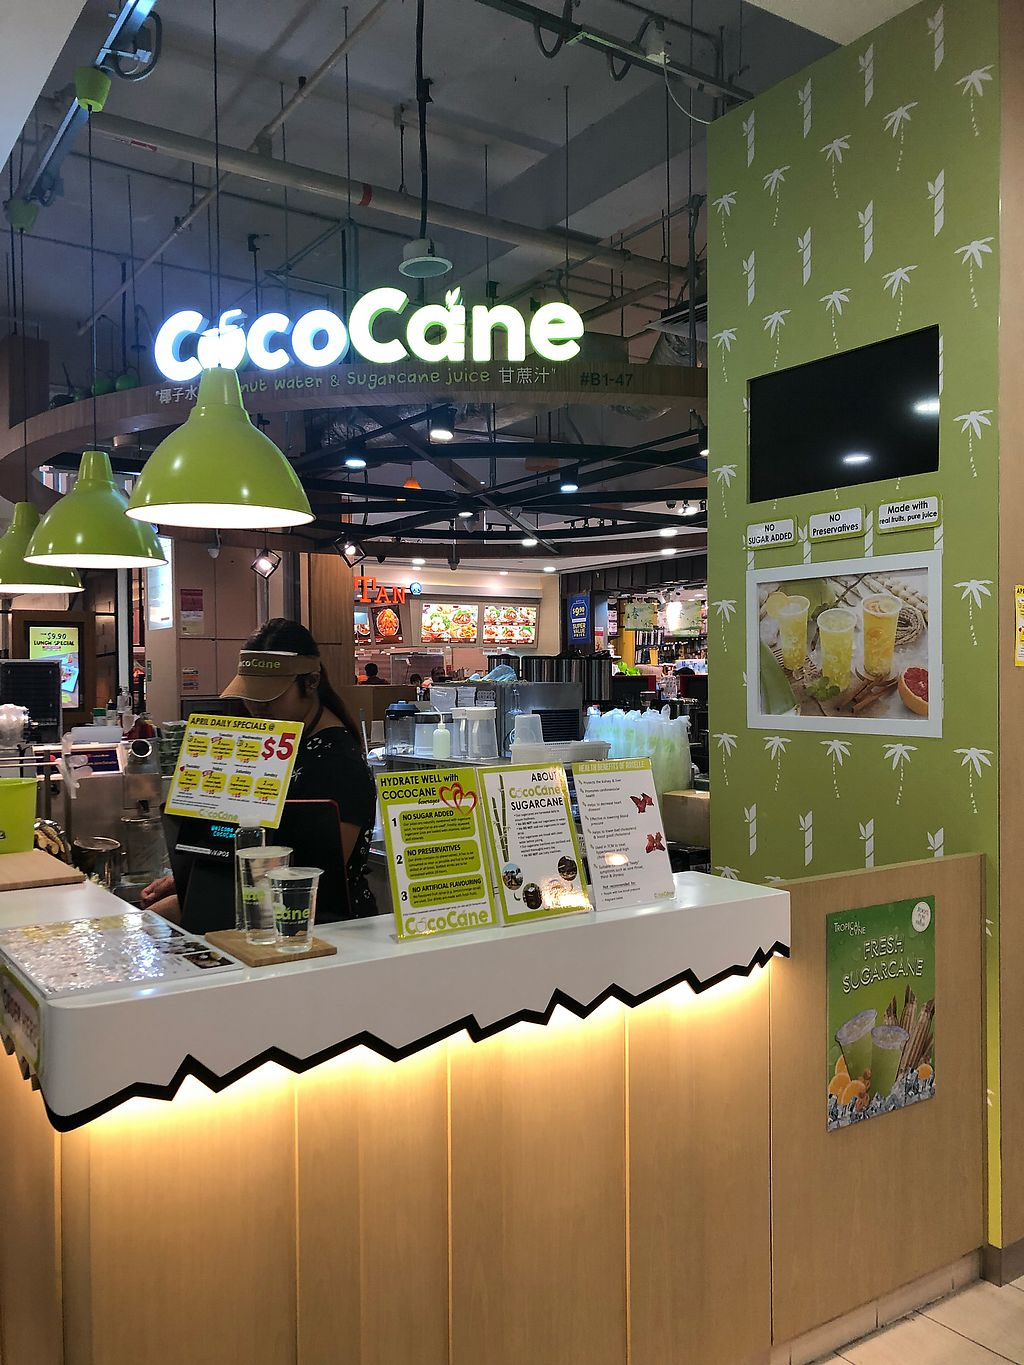 """Photo of CocoCane  by <a href=""""/members/profile/AmyLeySzeThoo"""">AmyLeySzeThoo</a> <br/>Stall front <br/> April 11, 2018  - <a href='/contact/abuse/image/113480/383597'>Report</a>"""